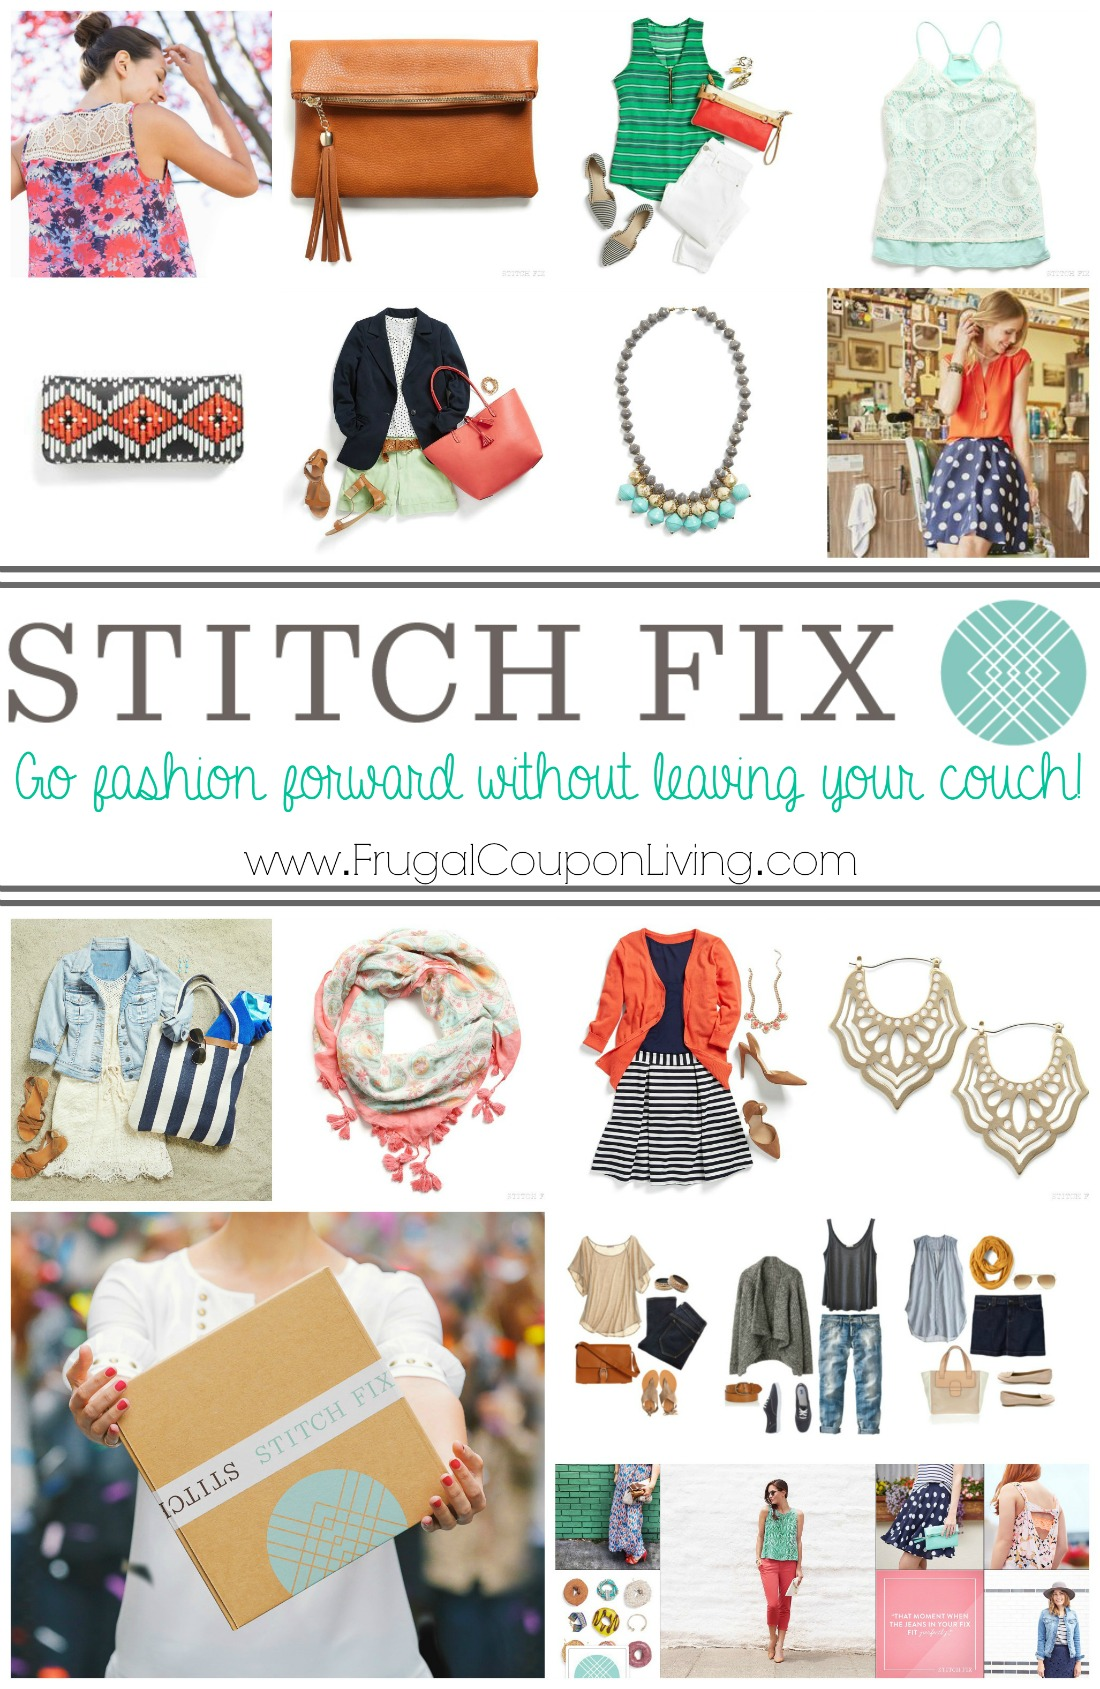 stitch-fix-Collage-frugal-coupon-living